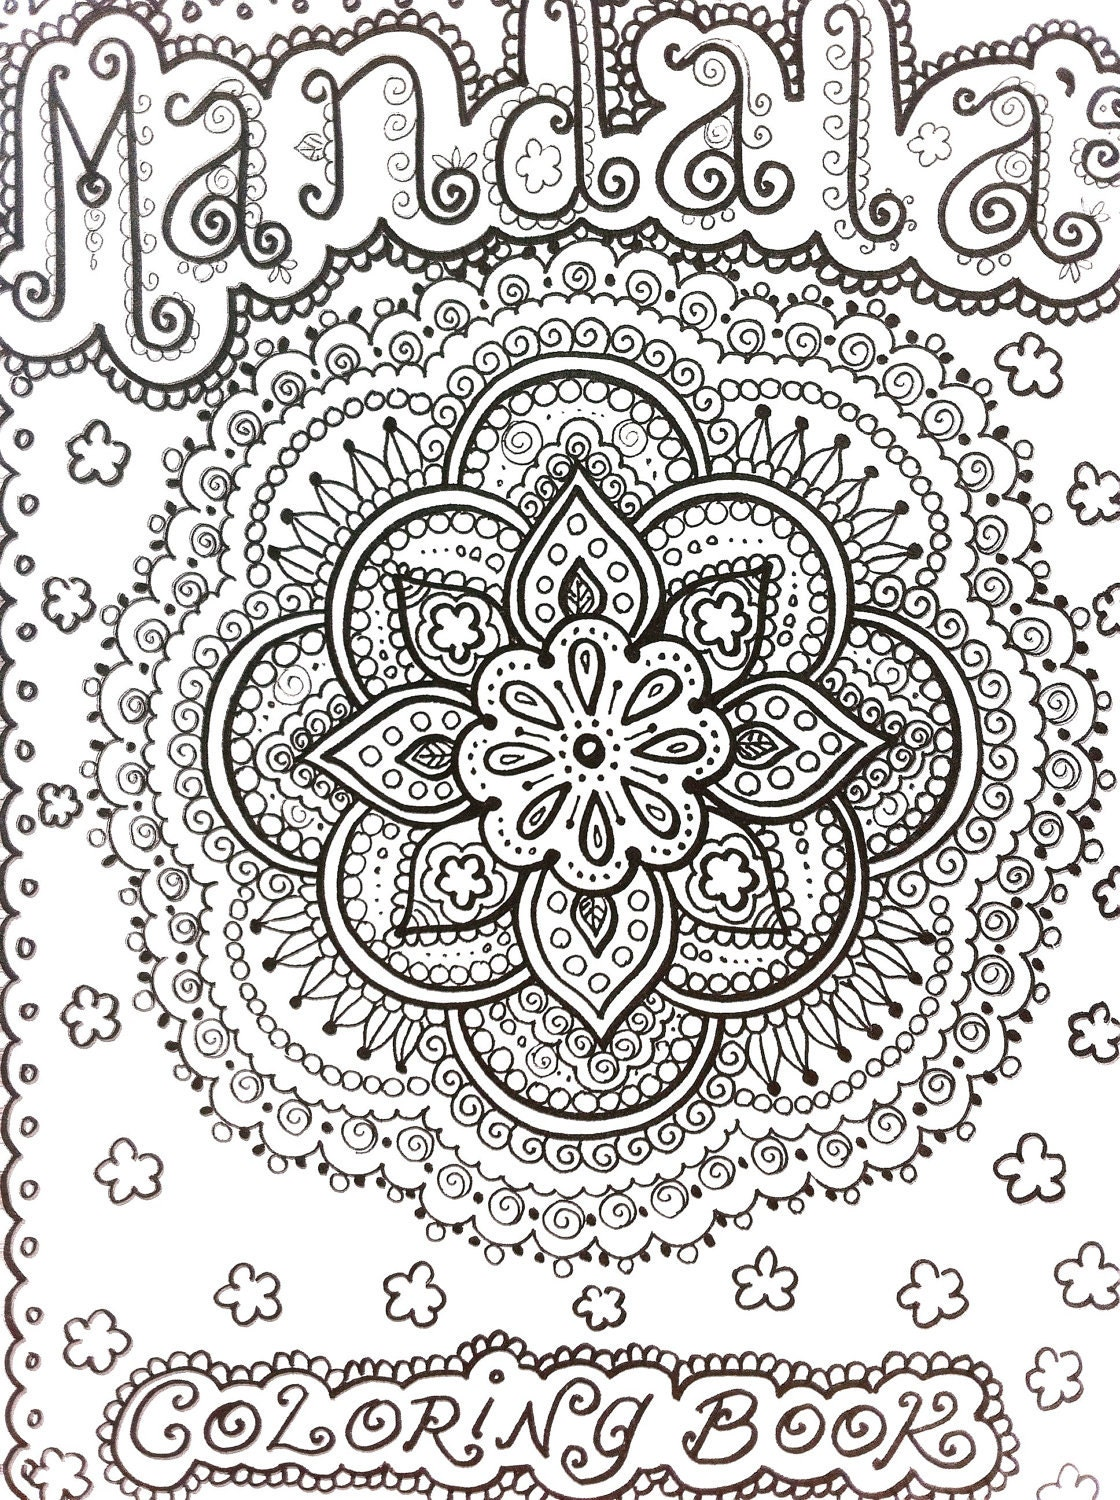 Mandalas Henna Style Coloring Book To Color Let It Heal And Relax You ...